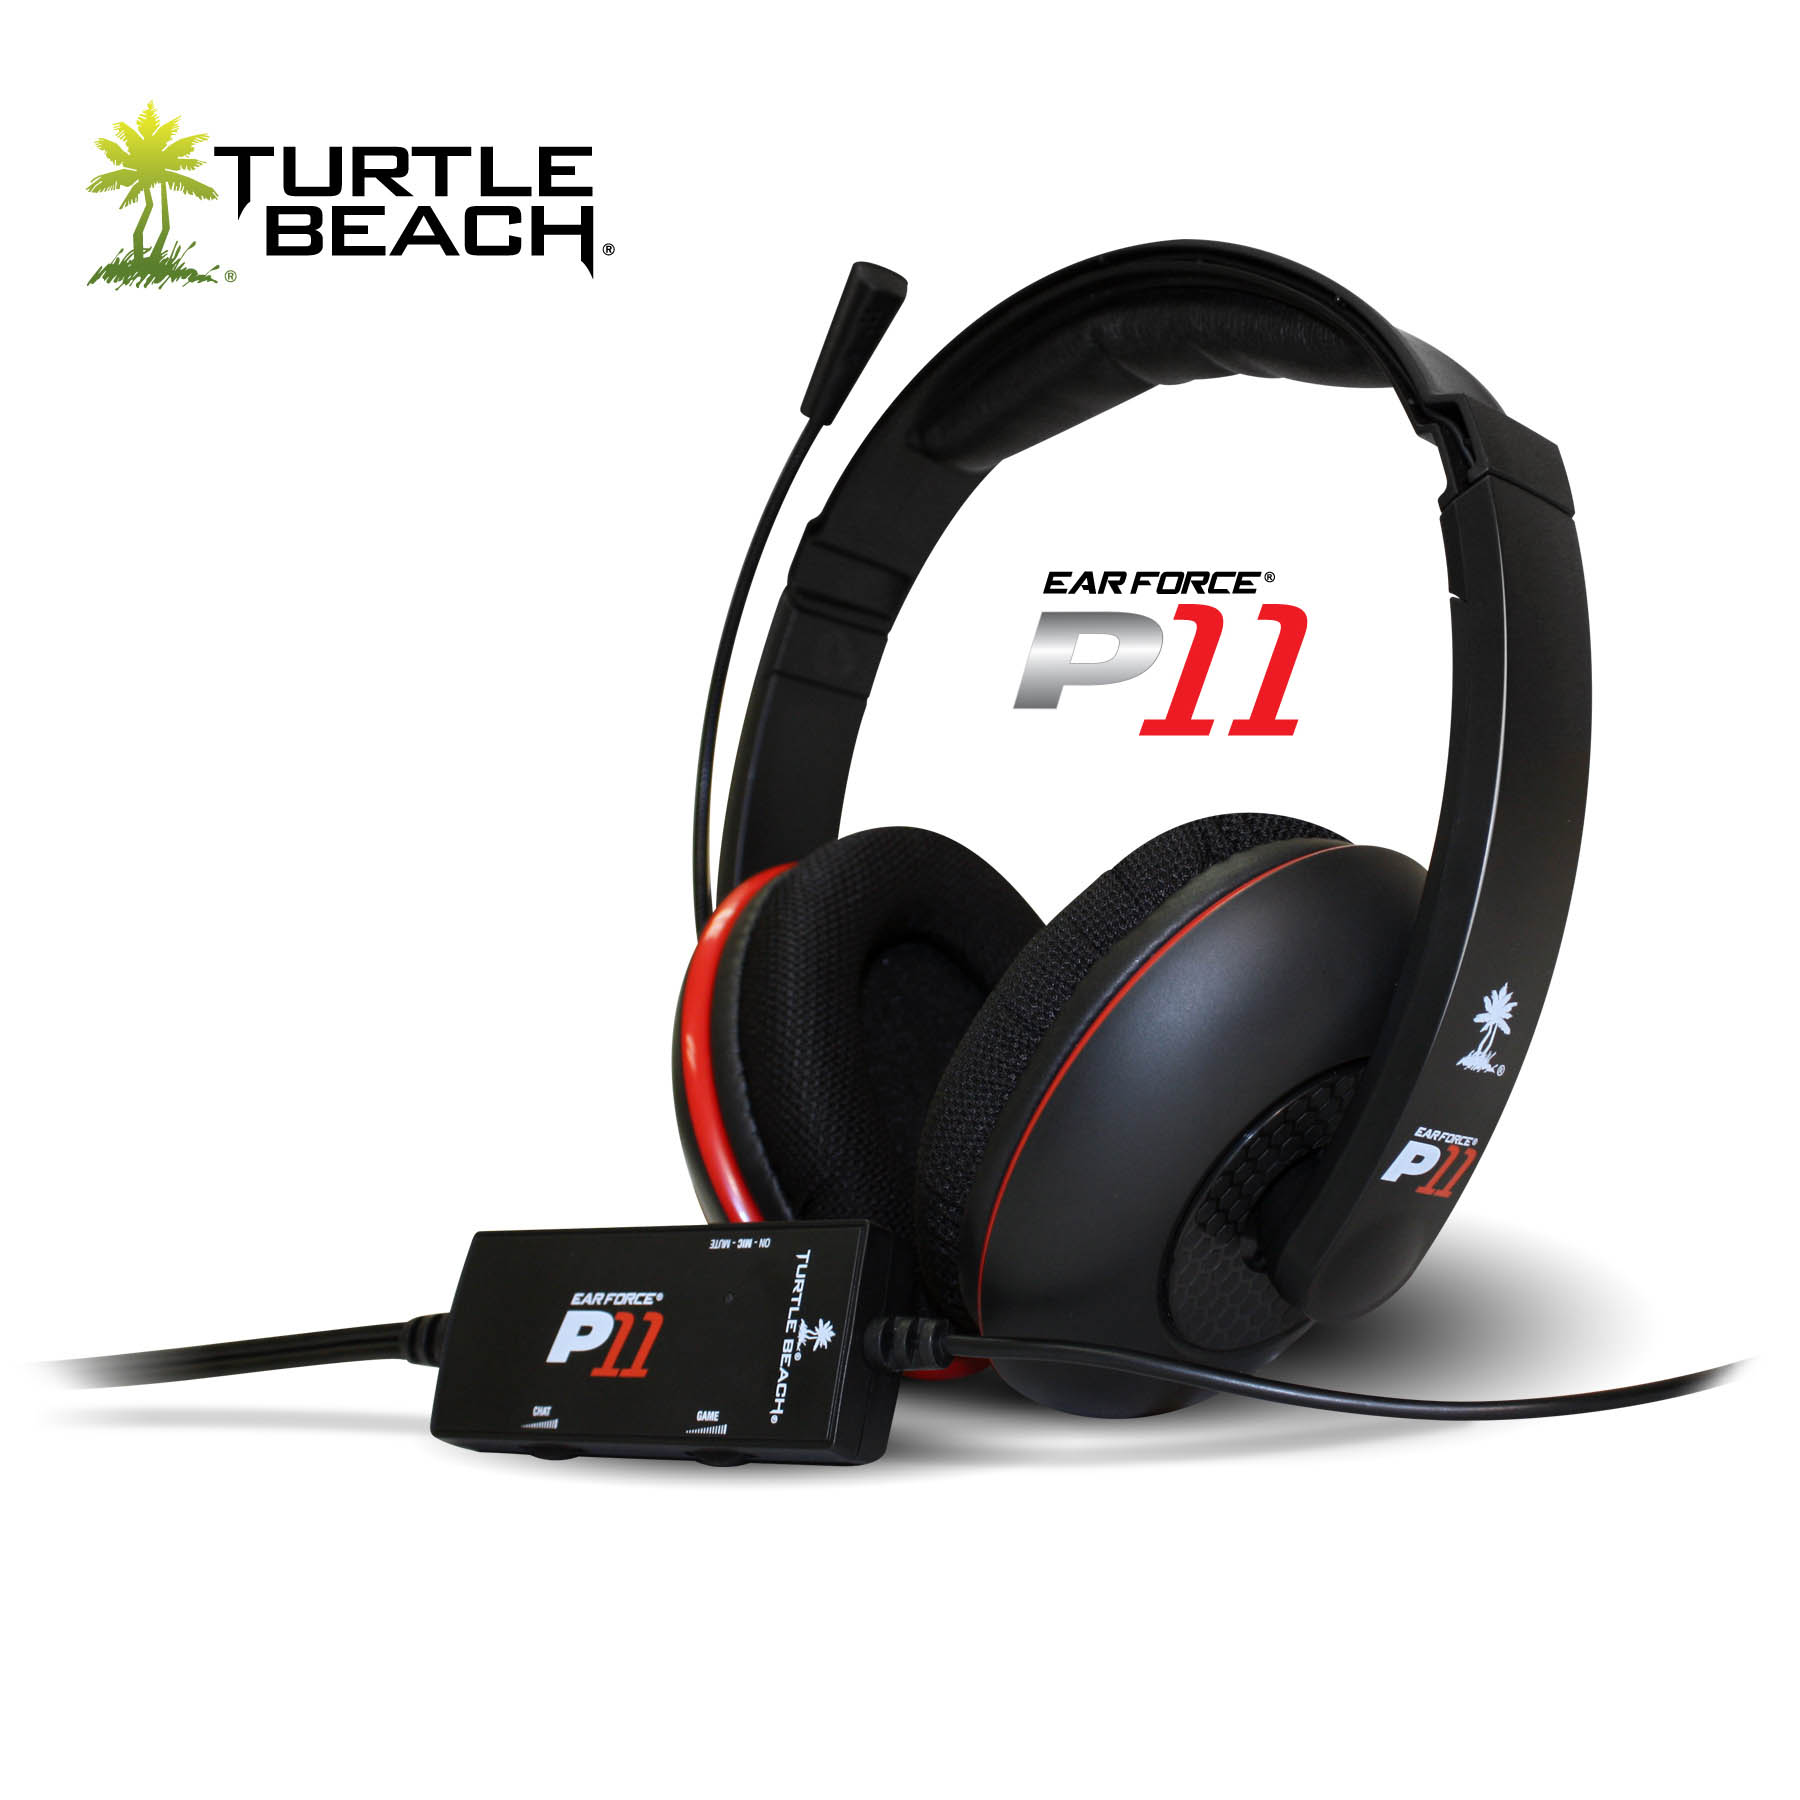 P Turtle Beach Ear Force P11   This headset